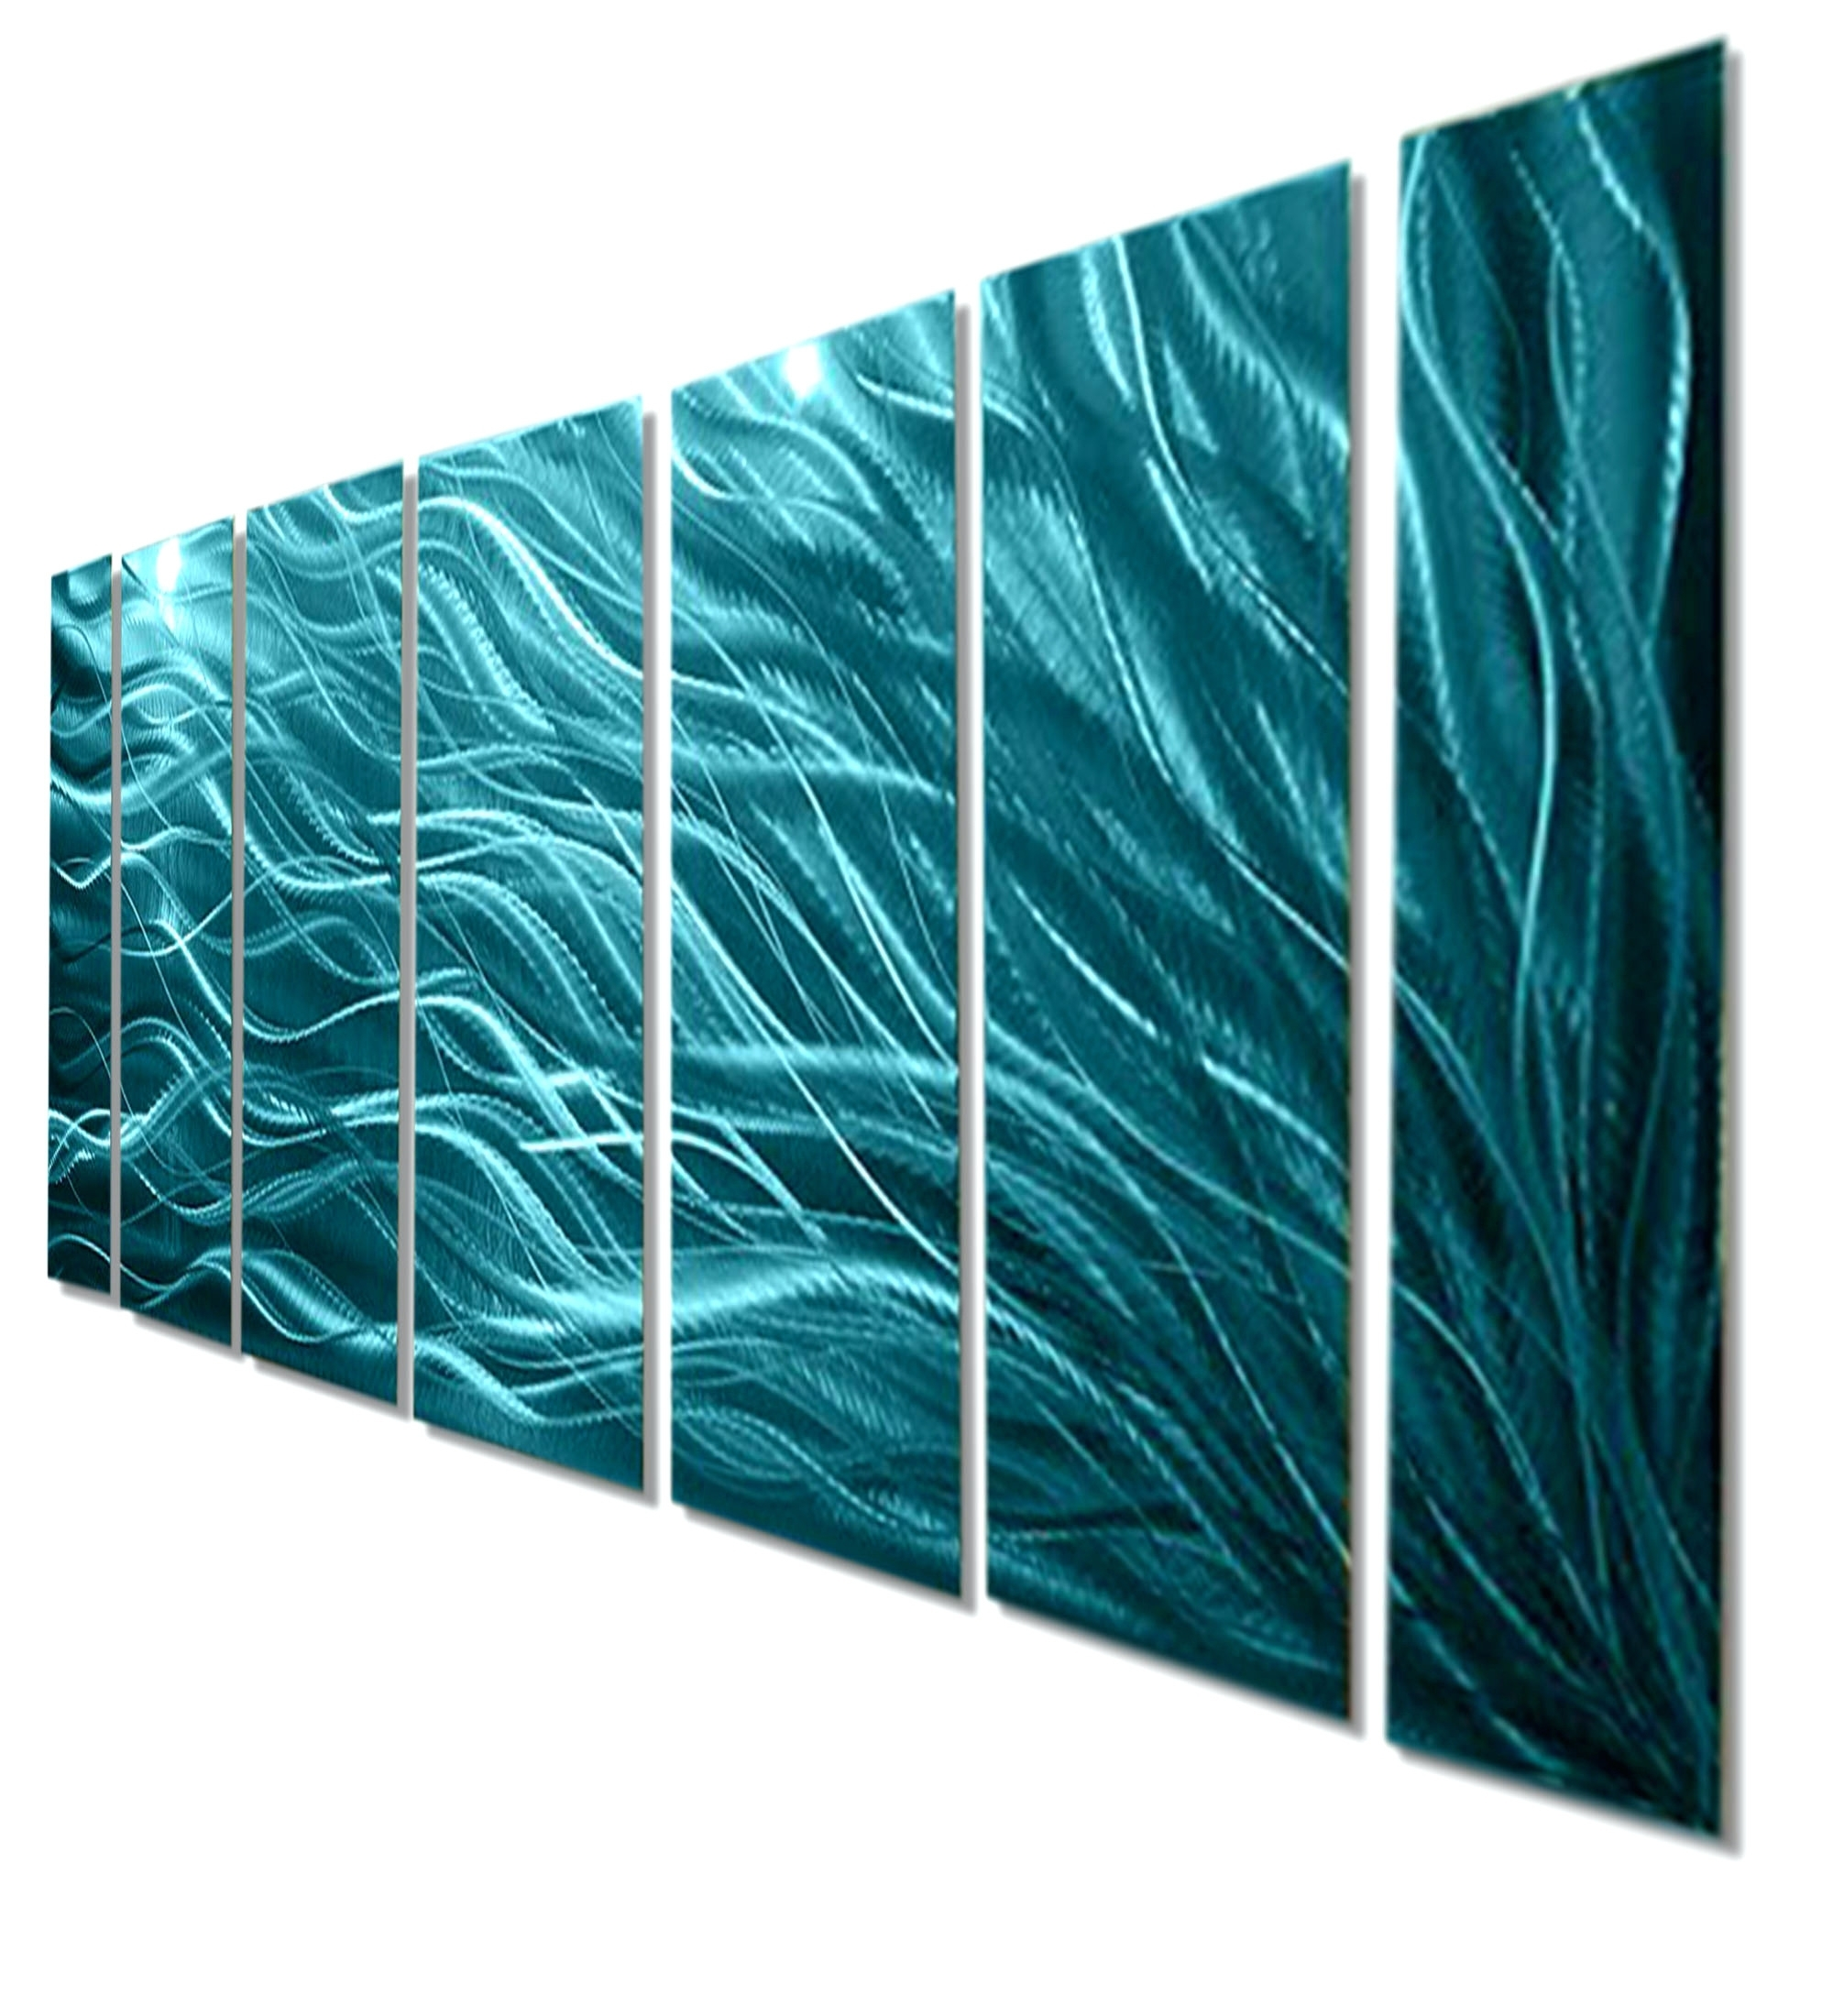 2018 Wall Arts ~ Blue Green And Brown Wall Art Home Decor 5 Piece In Blue And Green Wall Art (View 1 of 15)